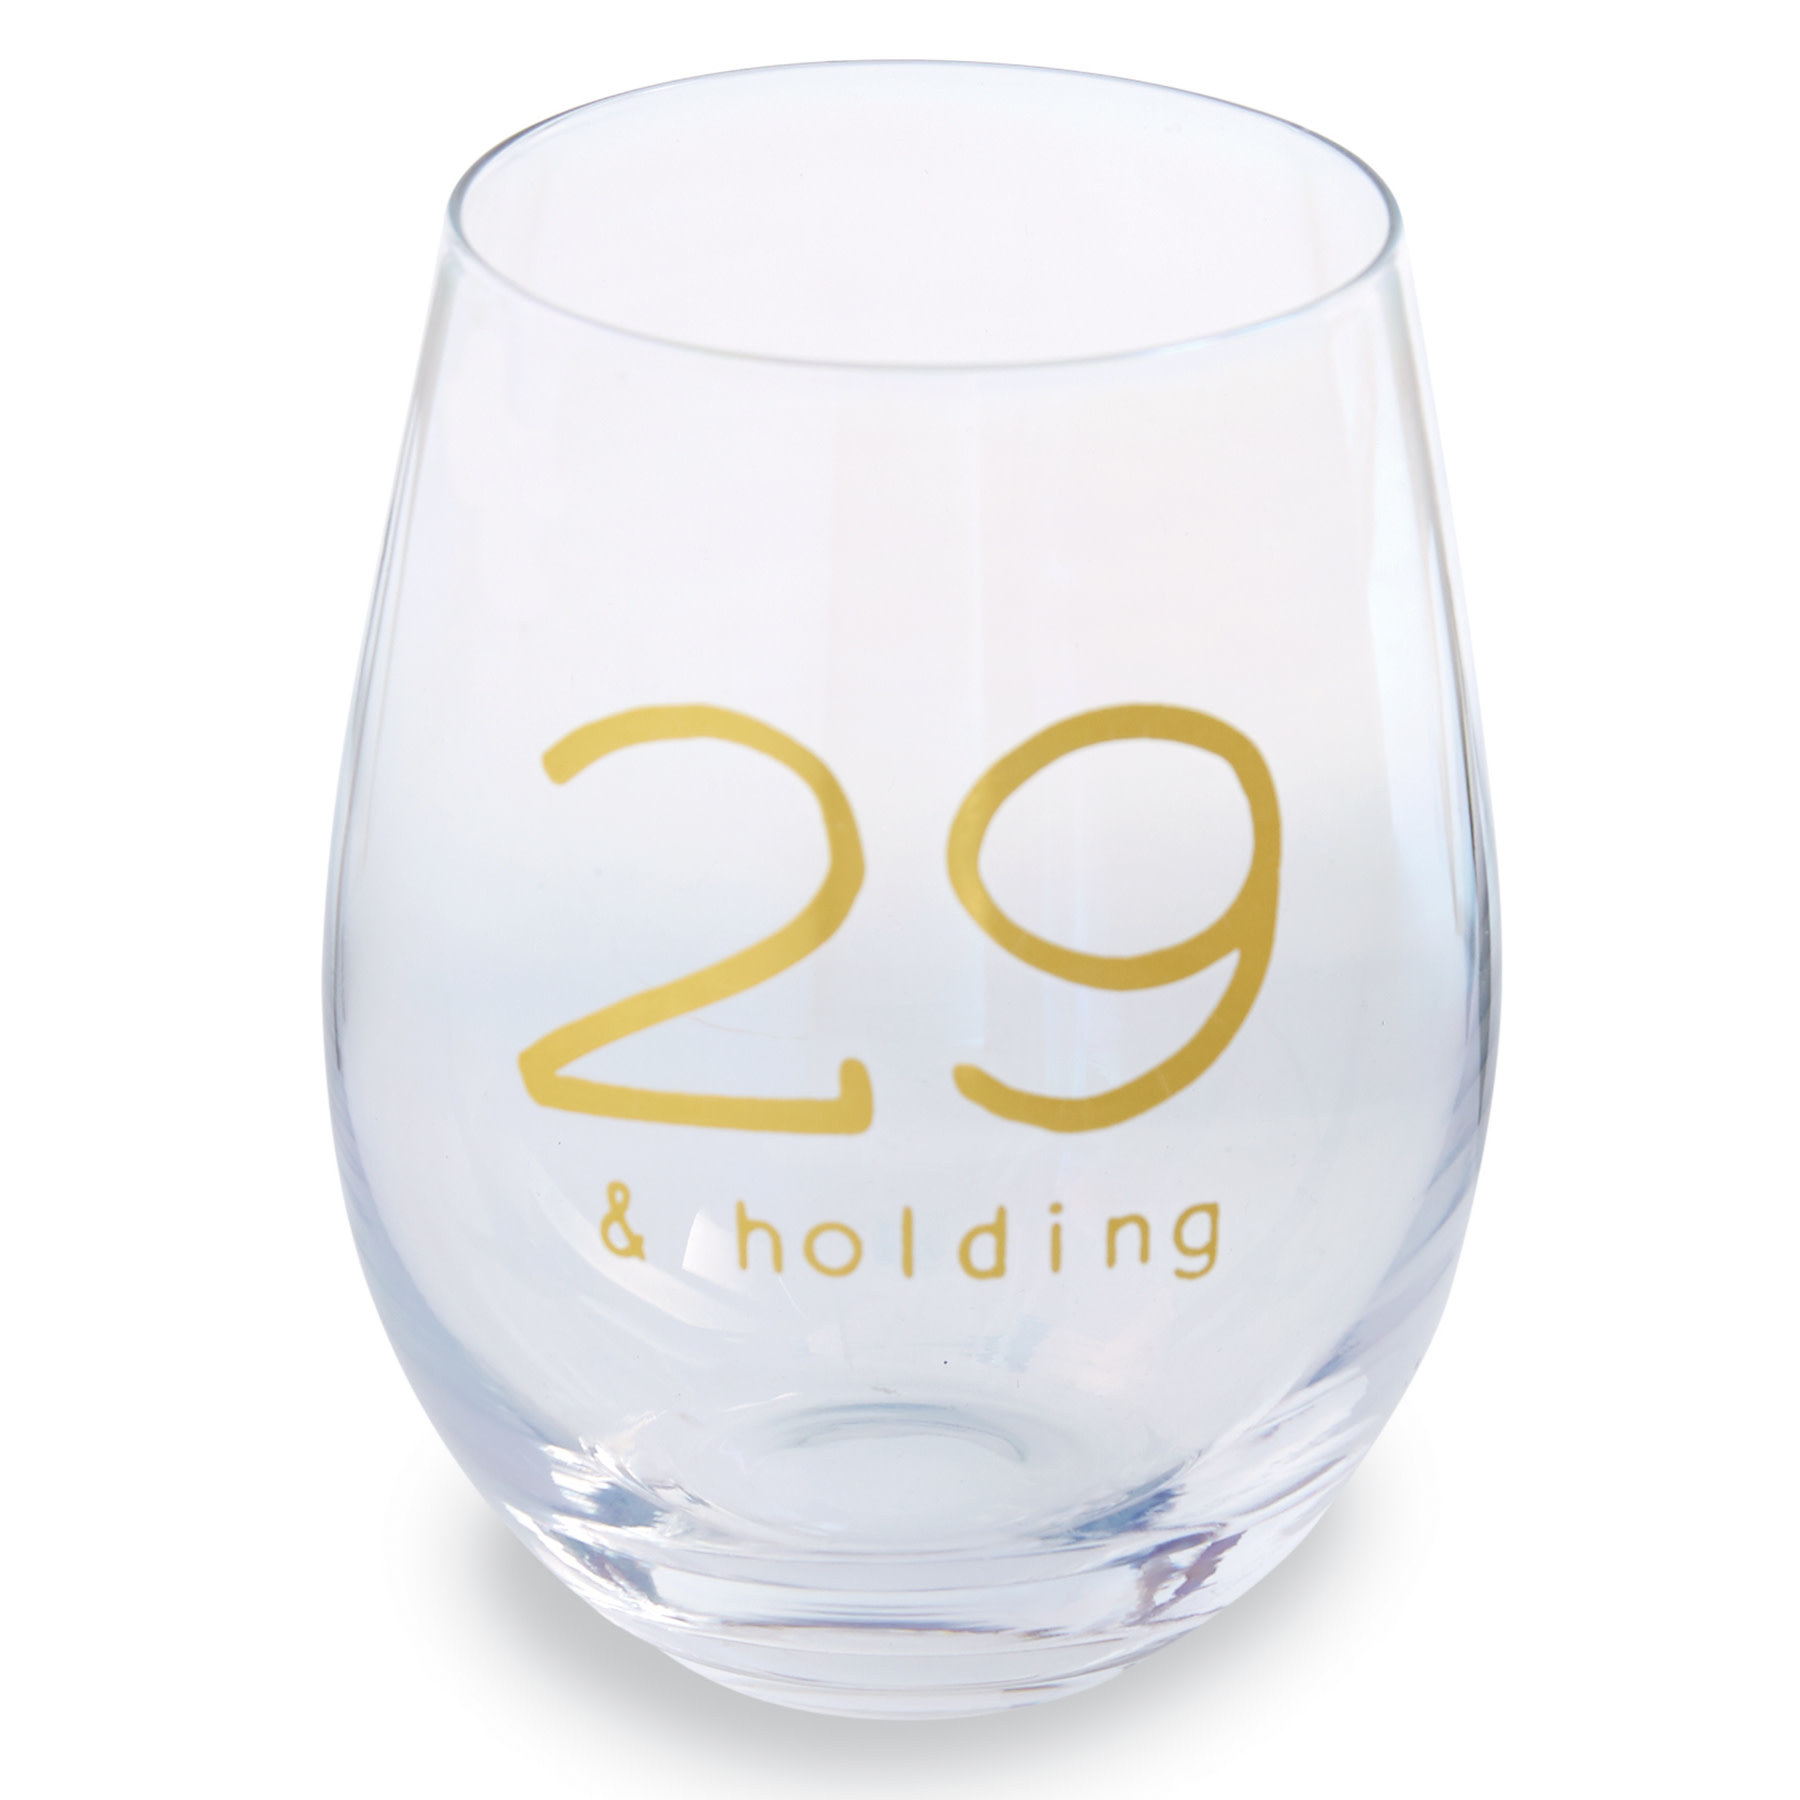 Mud Pie 29 BOXED WINE GLASS SET